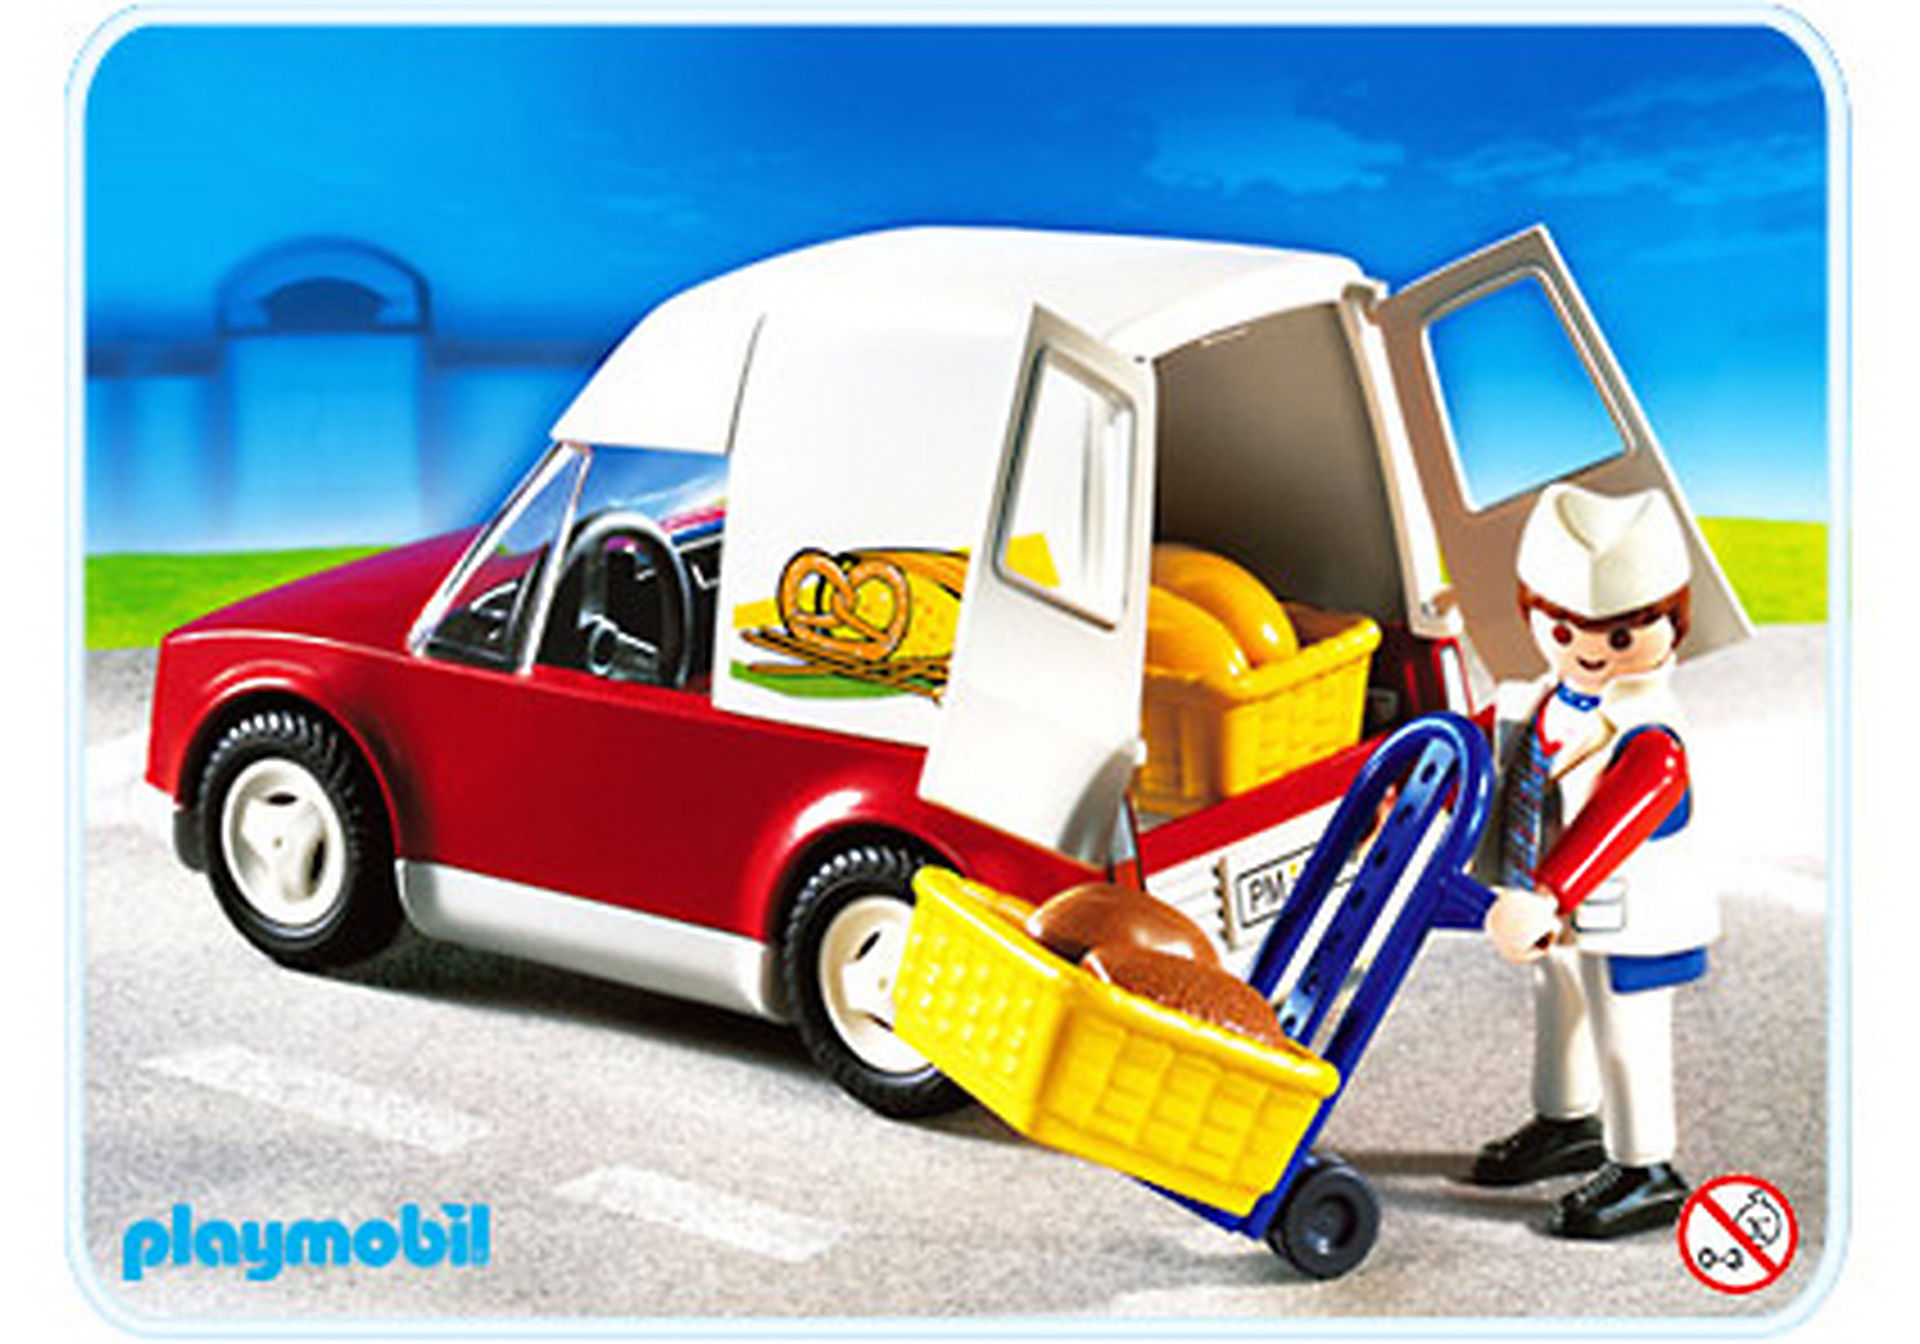 http://media.playmobil.com/i/playmobil/4411-A_product_detail/Boulanger / camionnette